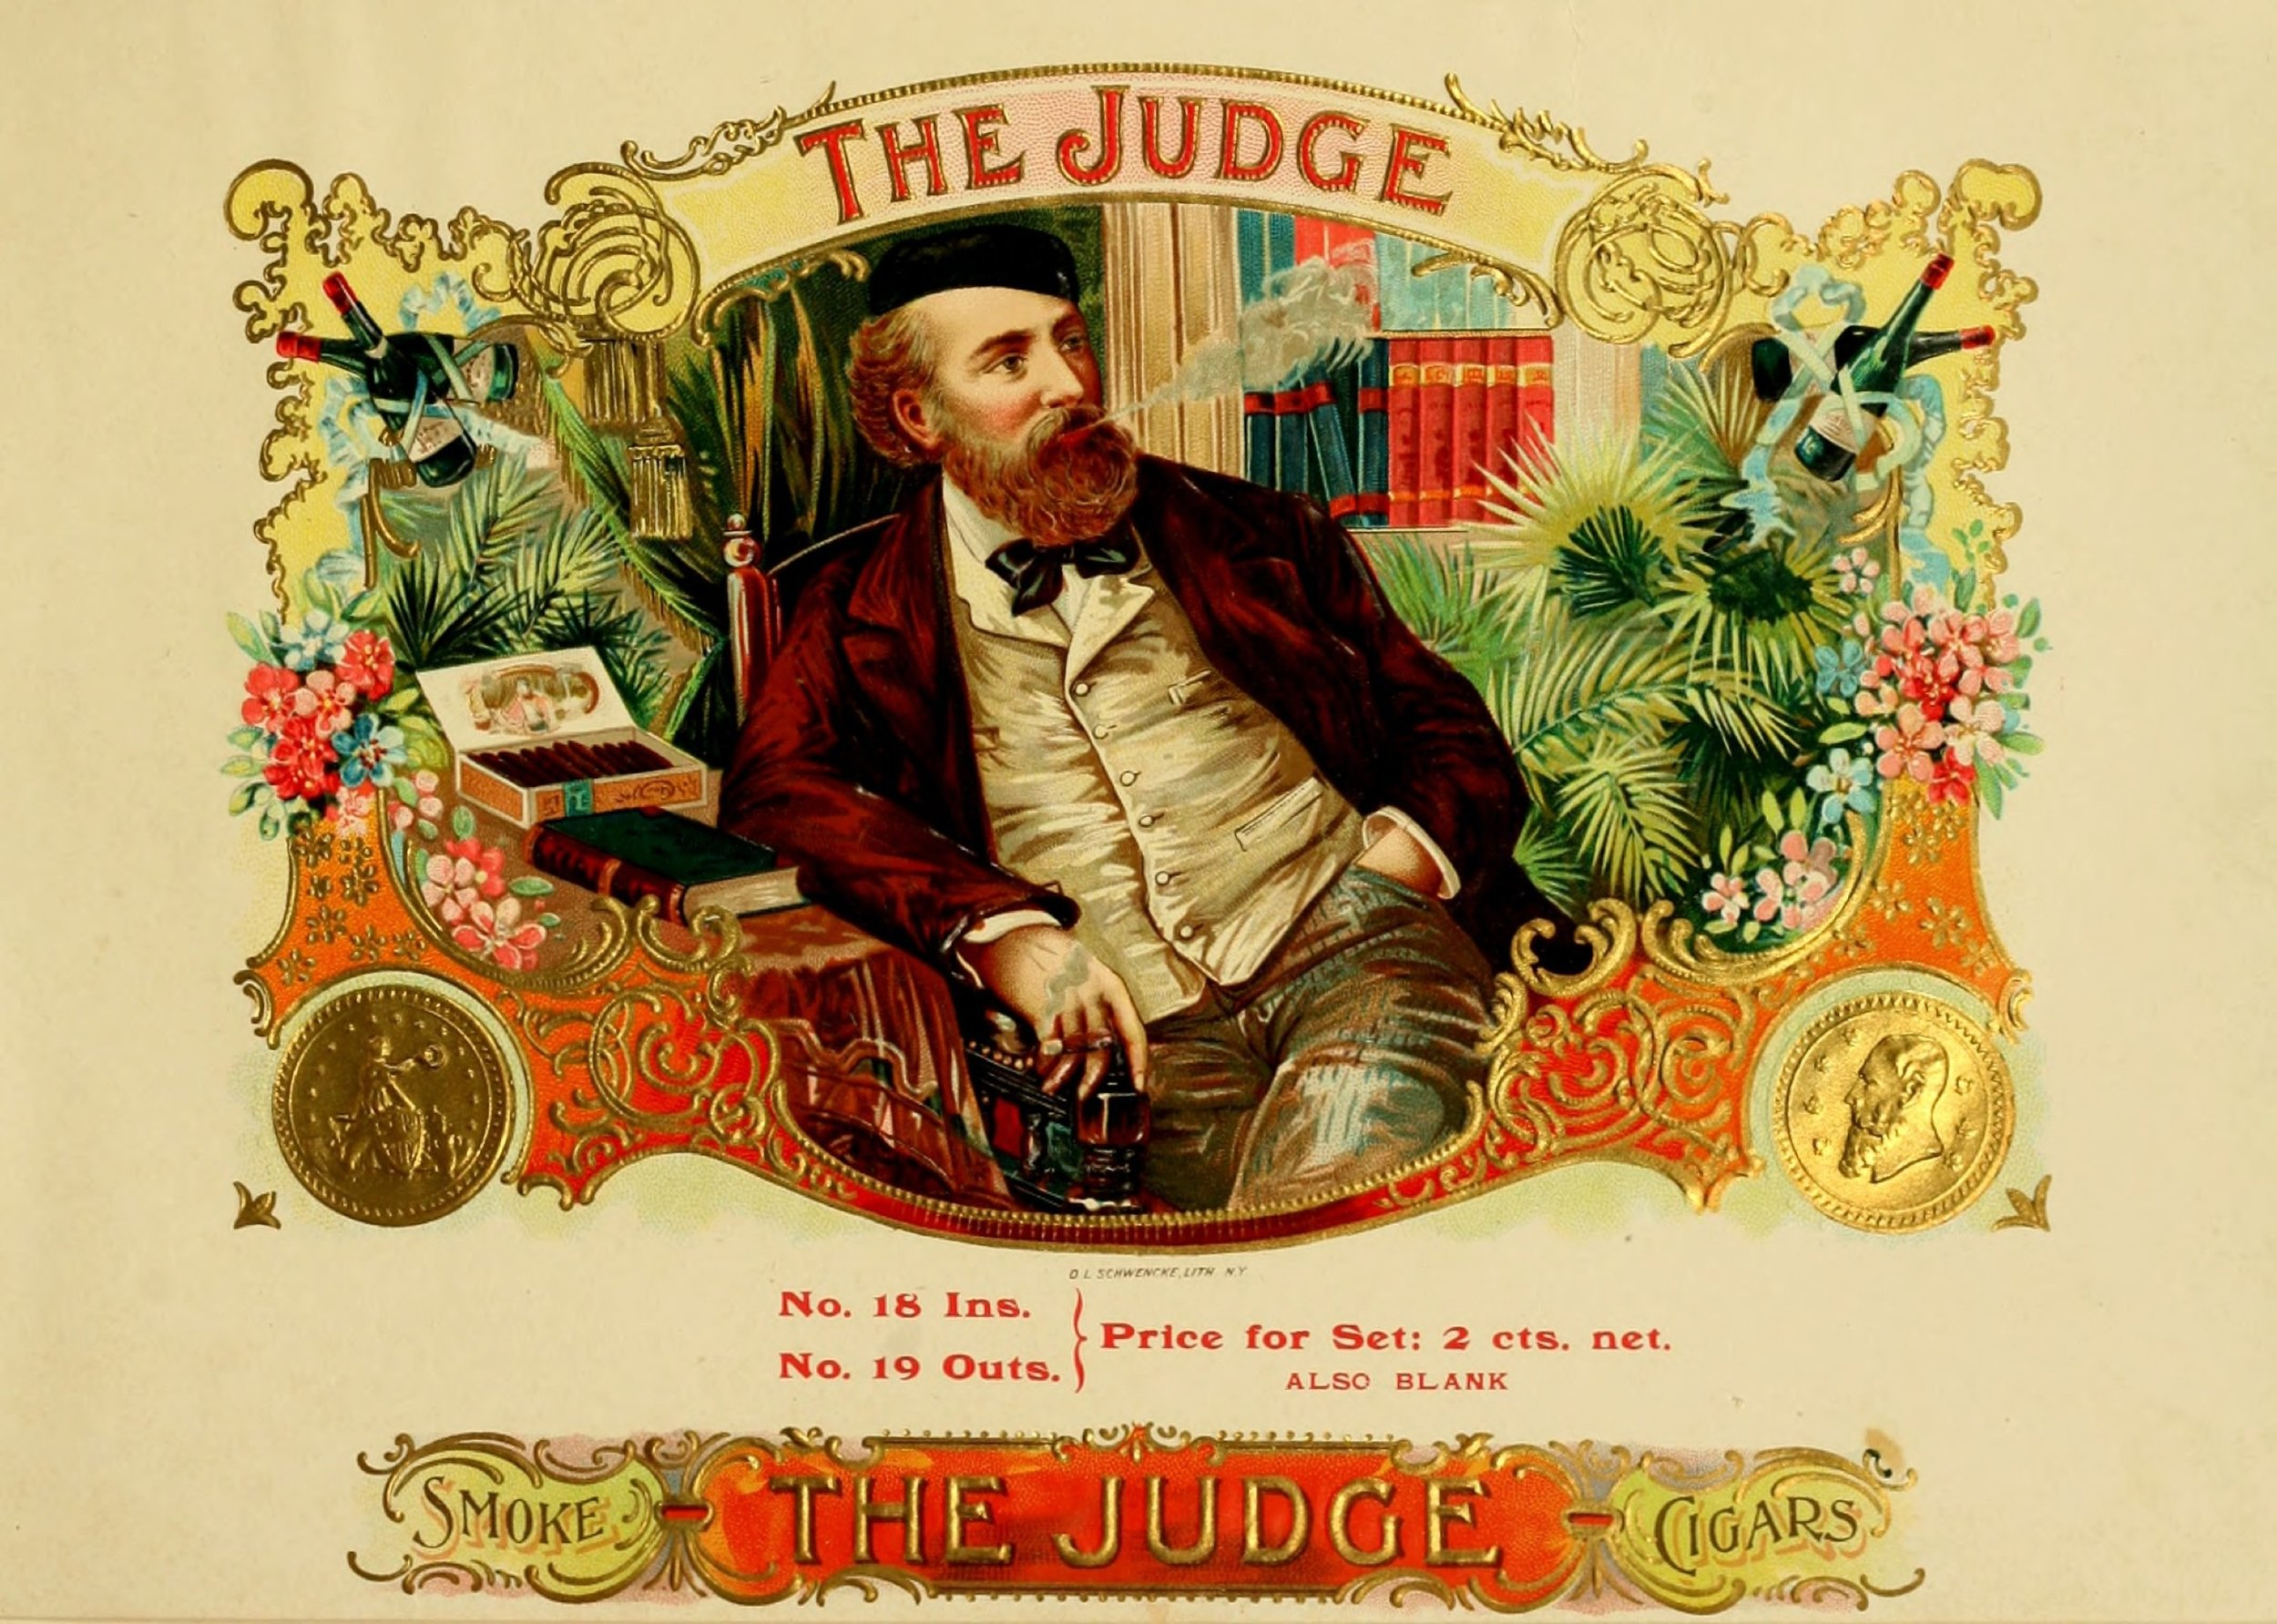 Cigar art was plentiful from the turn of the 19th century up until the first half of the 20th century. Many anonymous artists are still anonymous to this day.